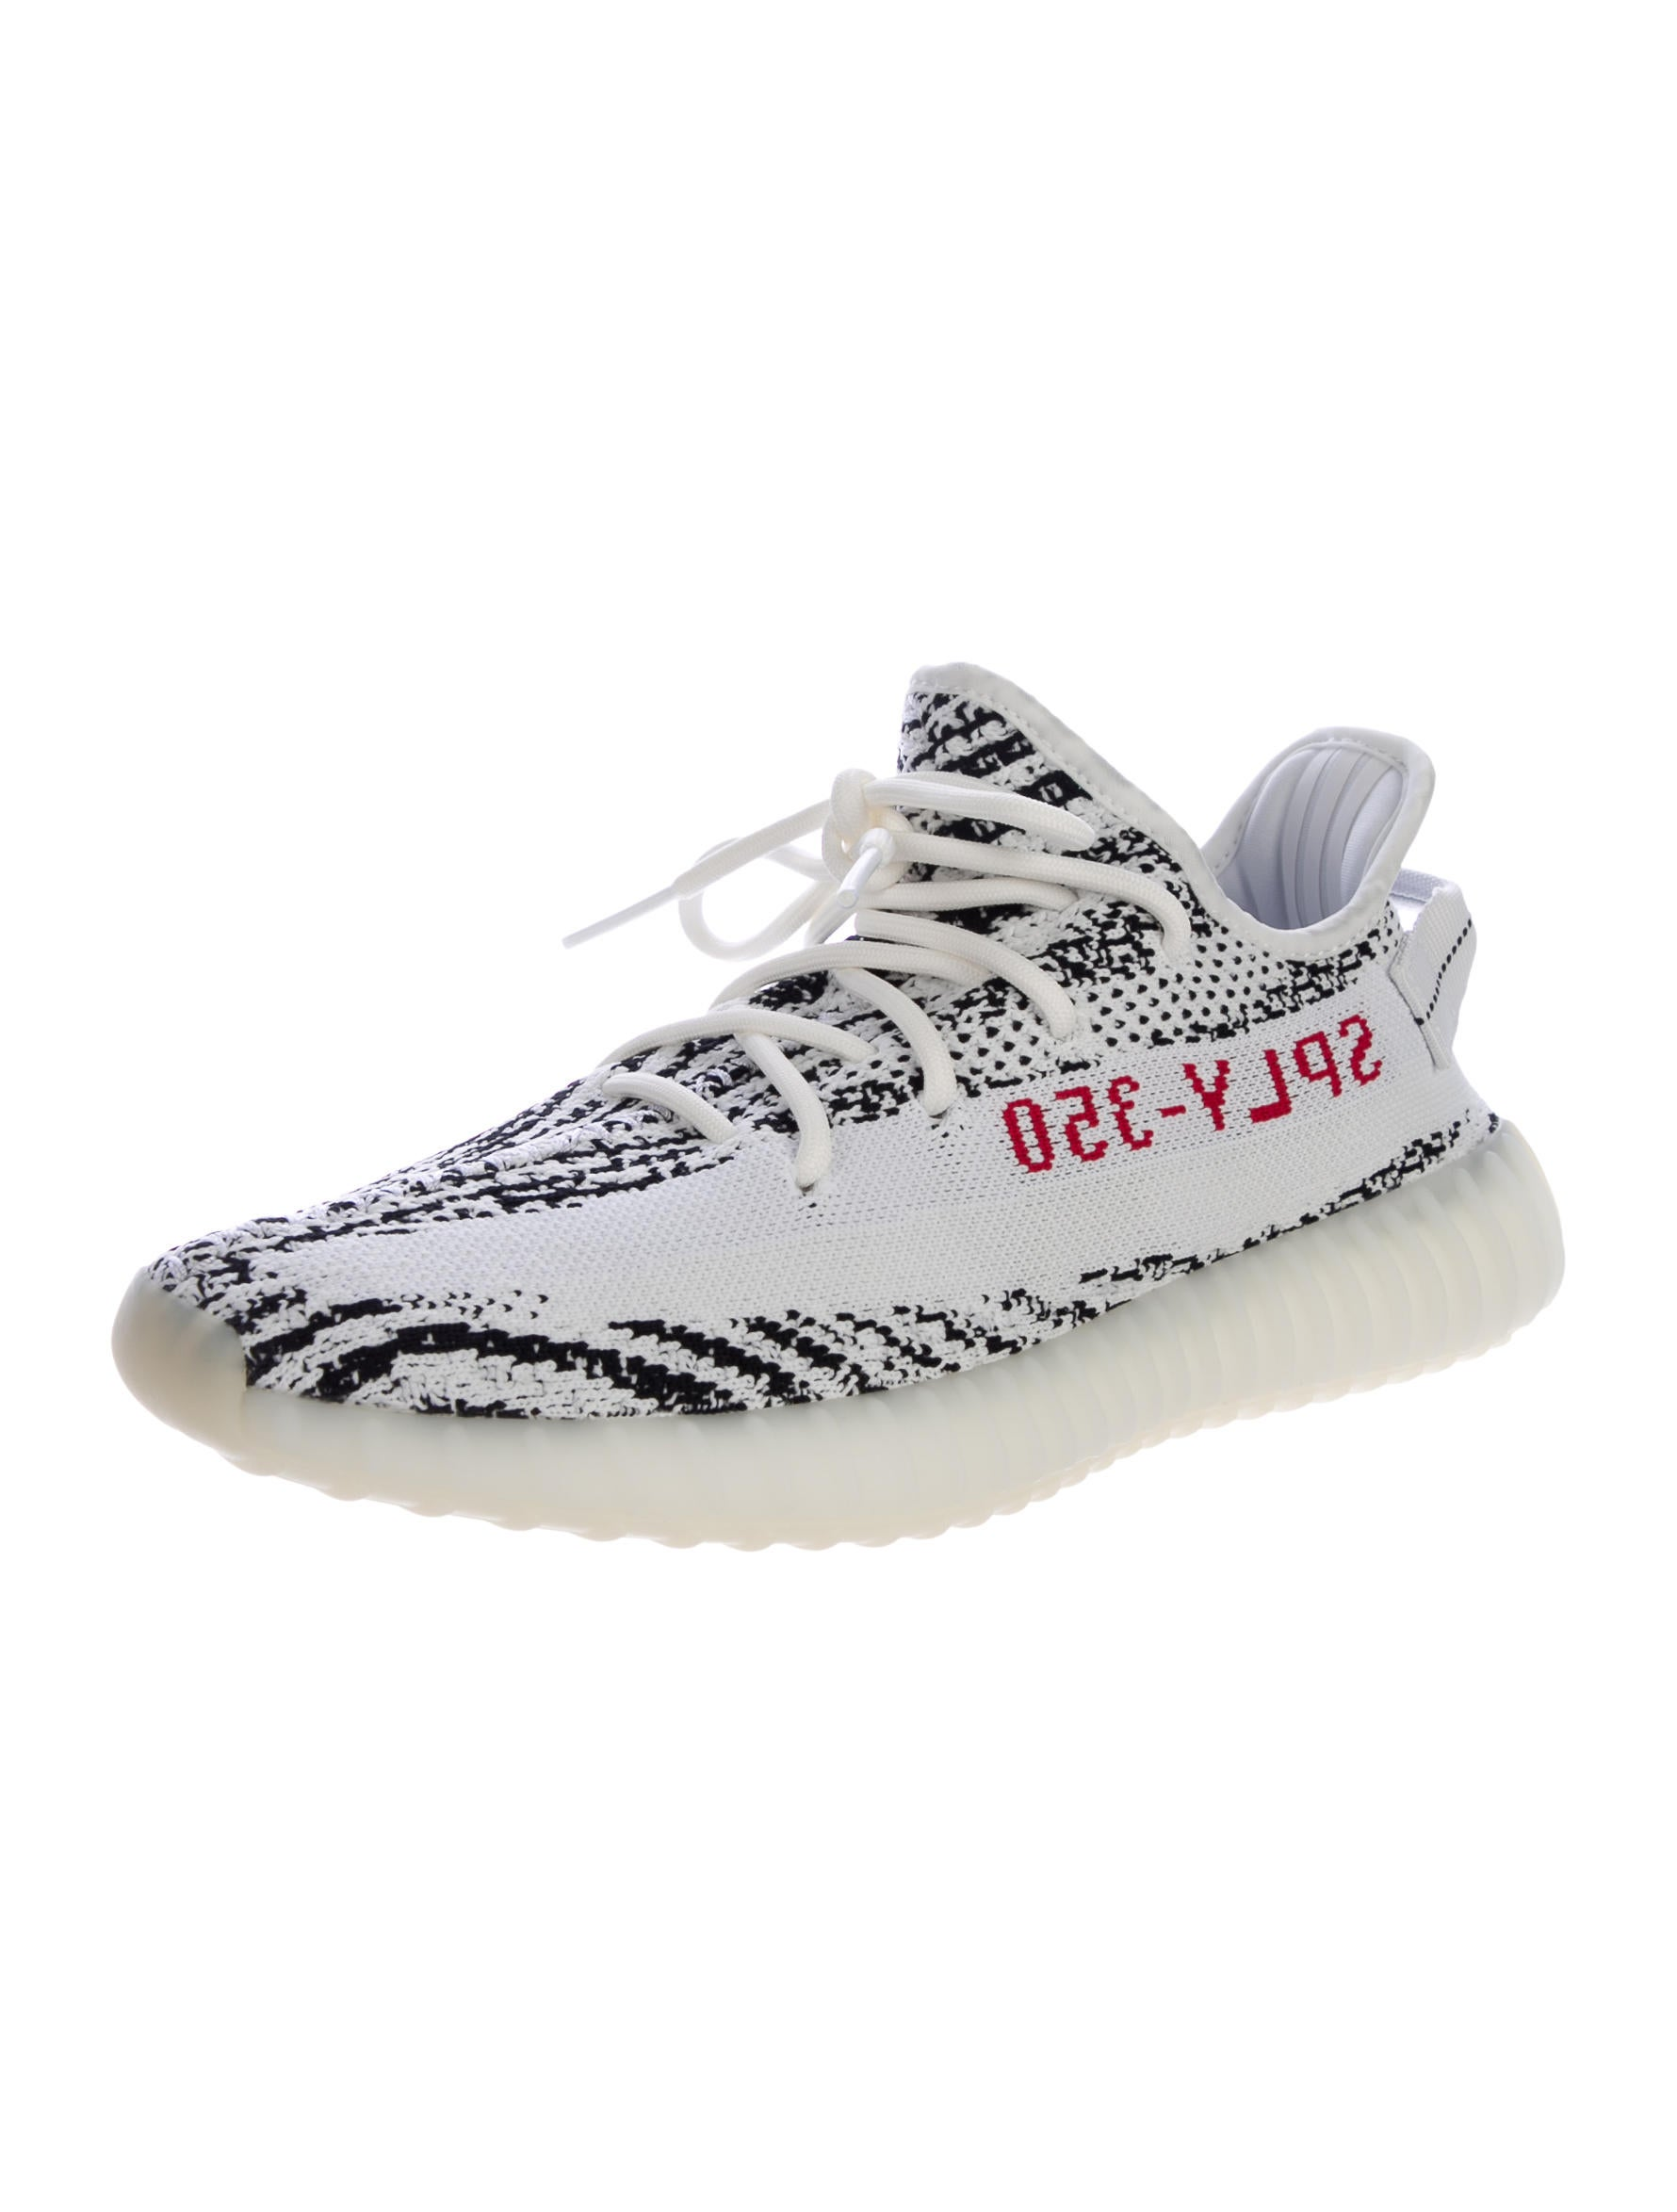 yeezy x adidas 2017 boost 350 v2 zebra sneakers w tags. Black Bedroom Furniture Sets. Home Design Ideas